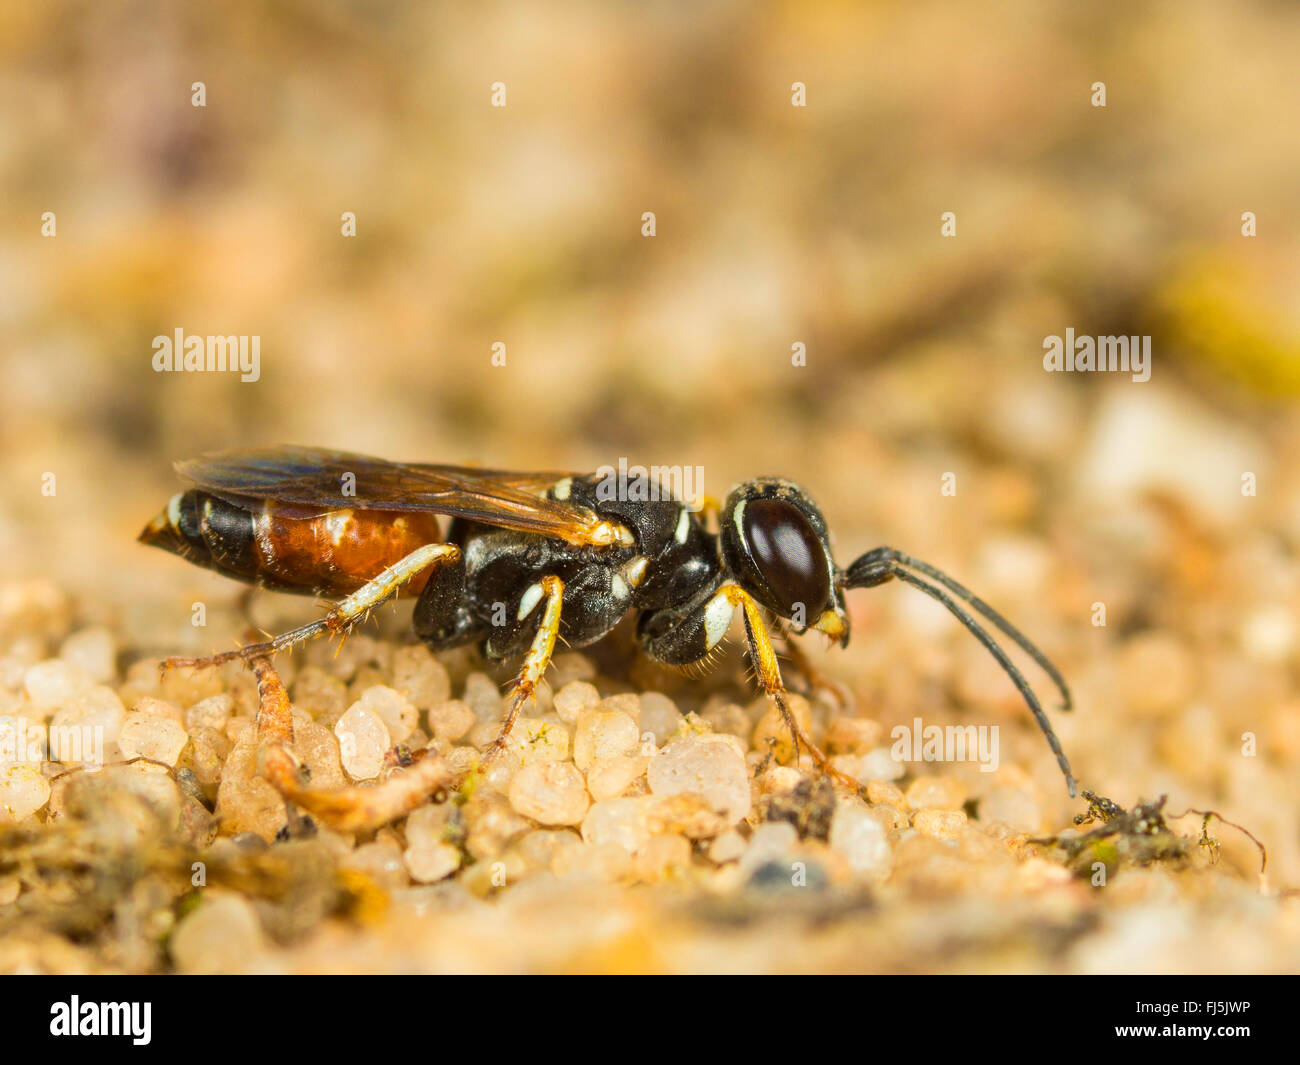 wasp nest with wasp stockfotos wasp nest with wasp bilder alamy. Black Bedroom Furniture Sets. Home Design Ideas